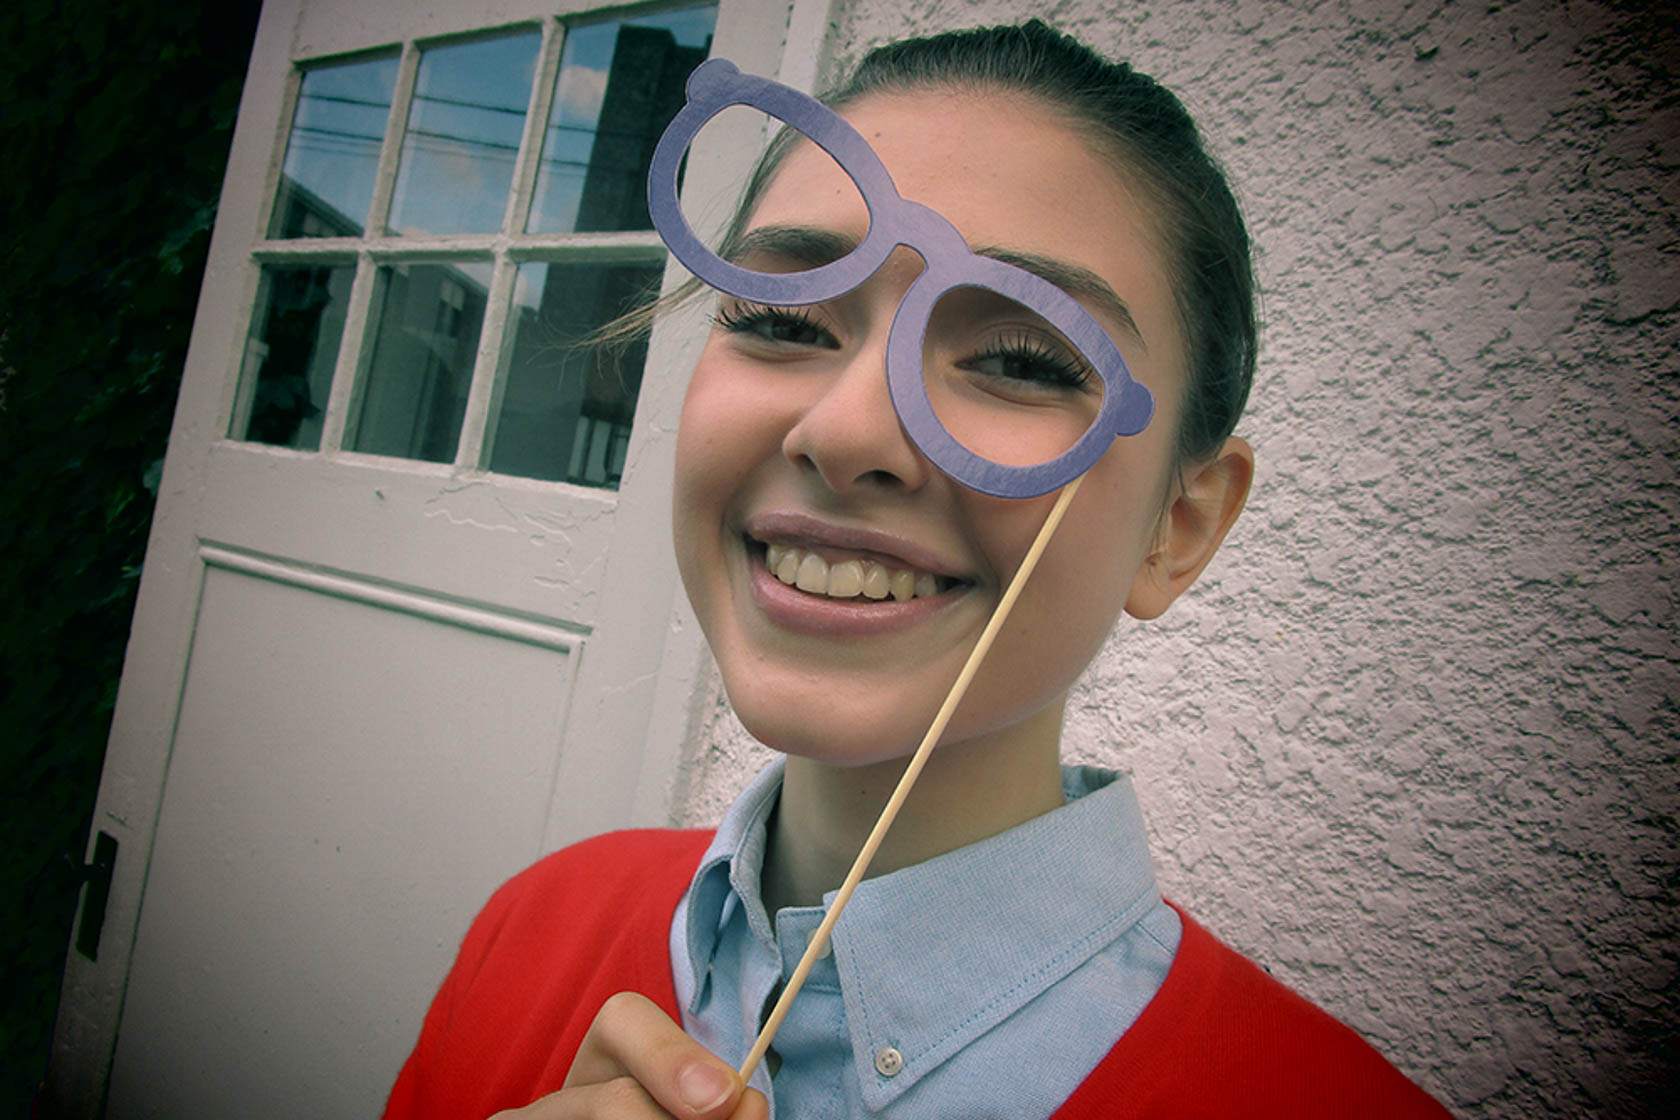 Image of a girl wearing purple glasses shot on the IXUS 180